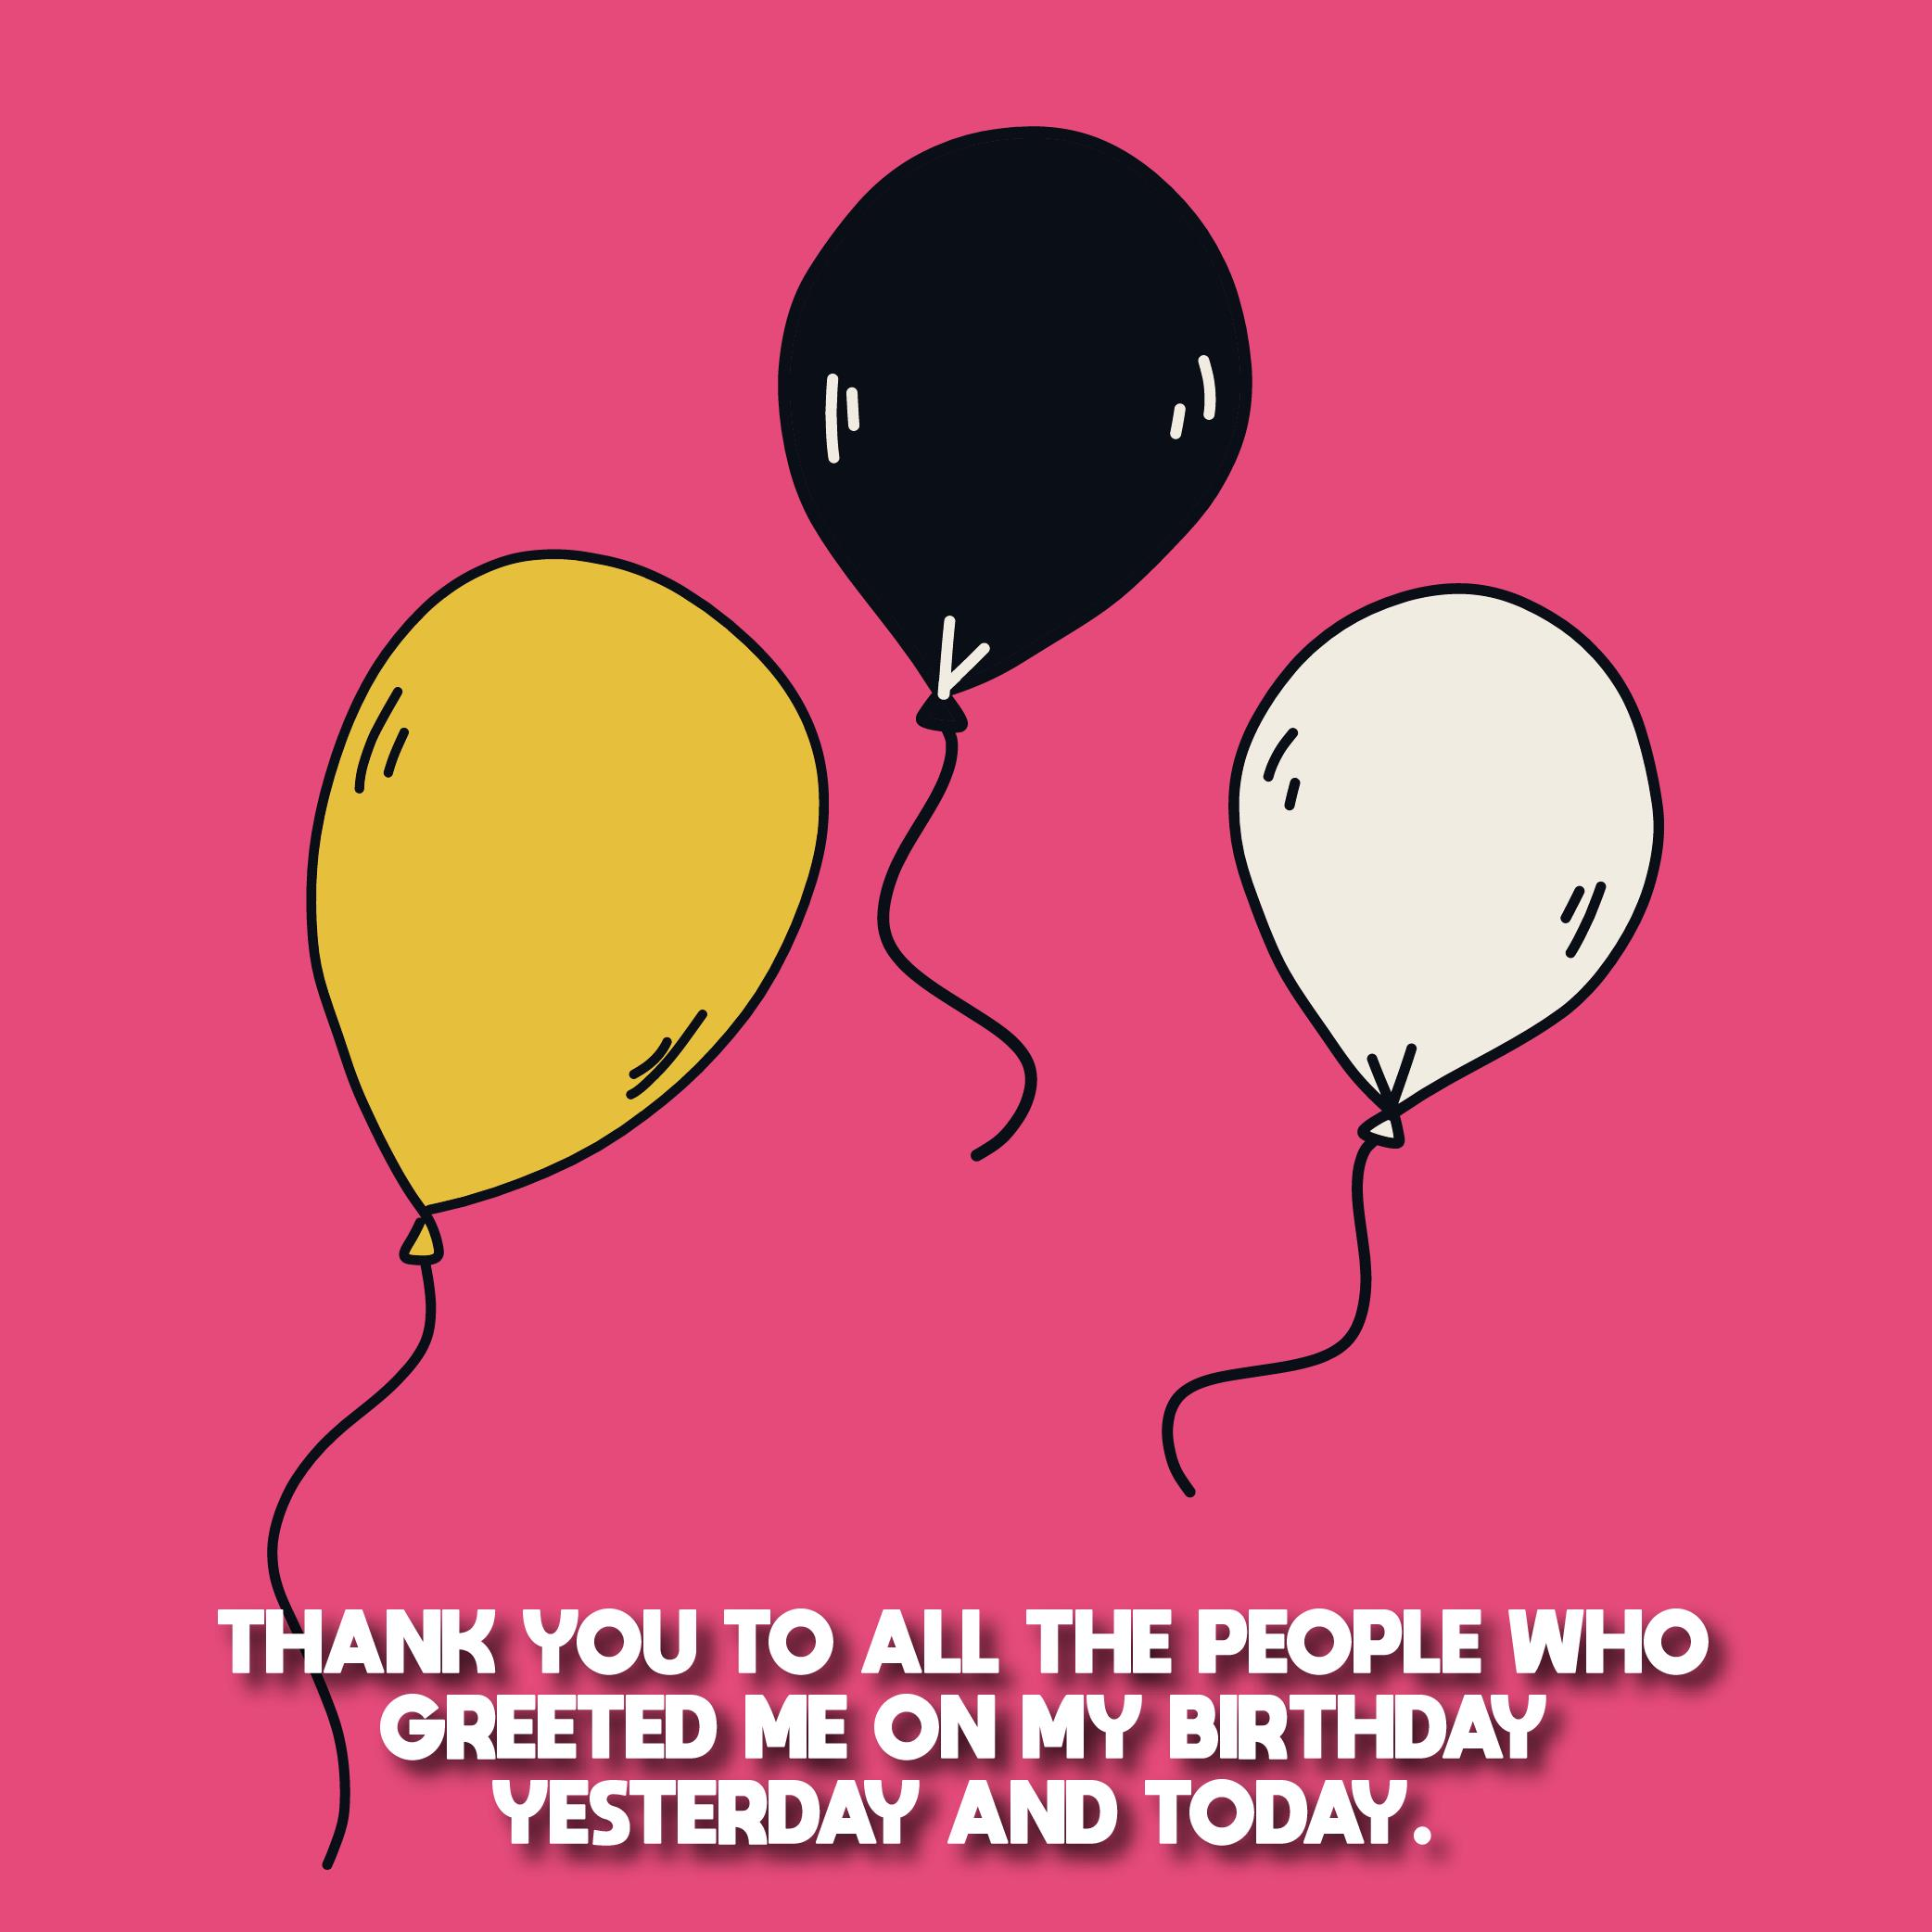 thank-you-for-all-the-birthday-wishes-07